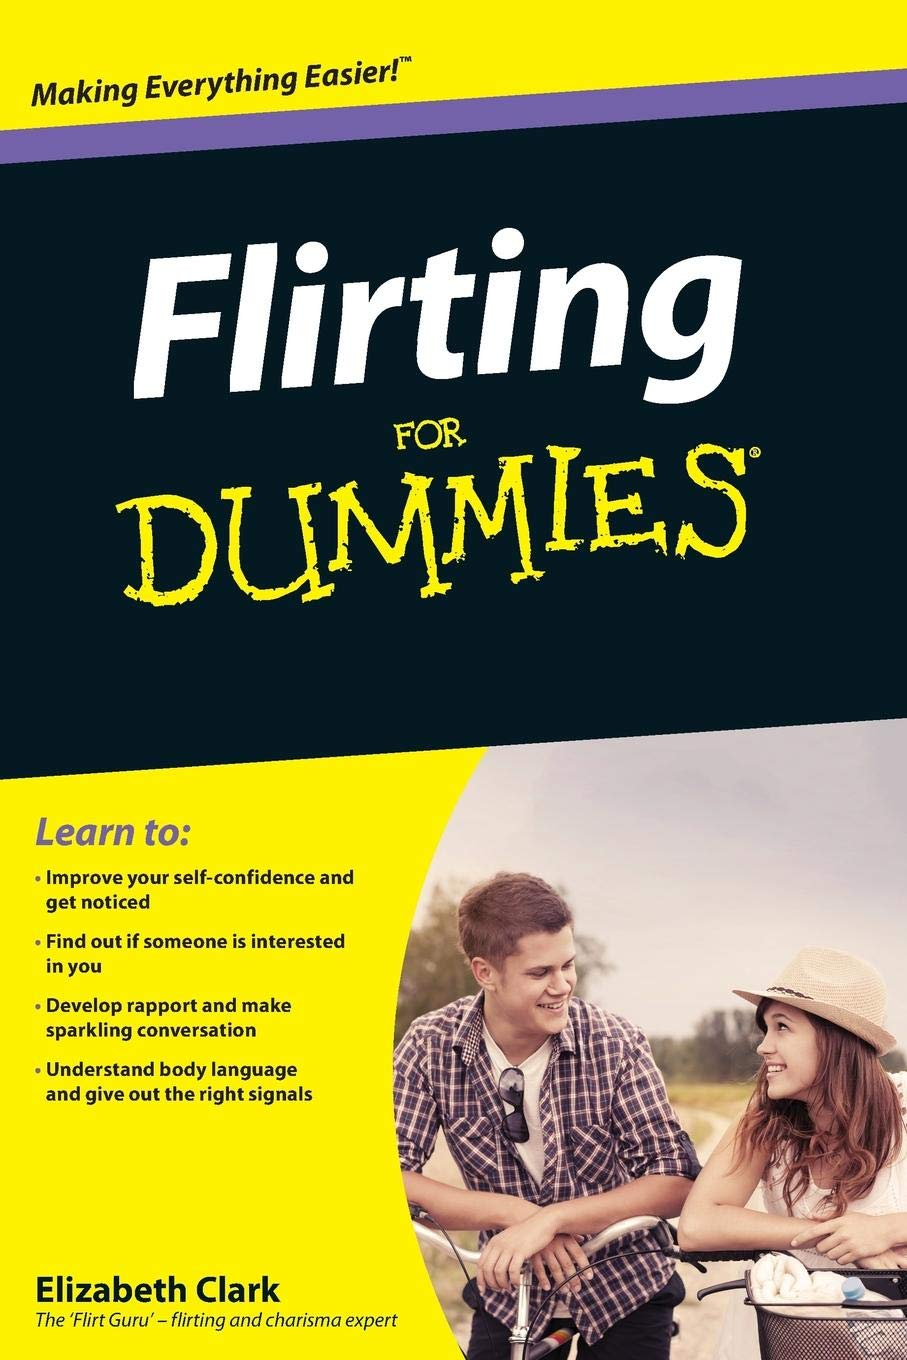 How to flirt for idiots [PUNIQRANDLINE-(au-dating-names.txt) 67